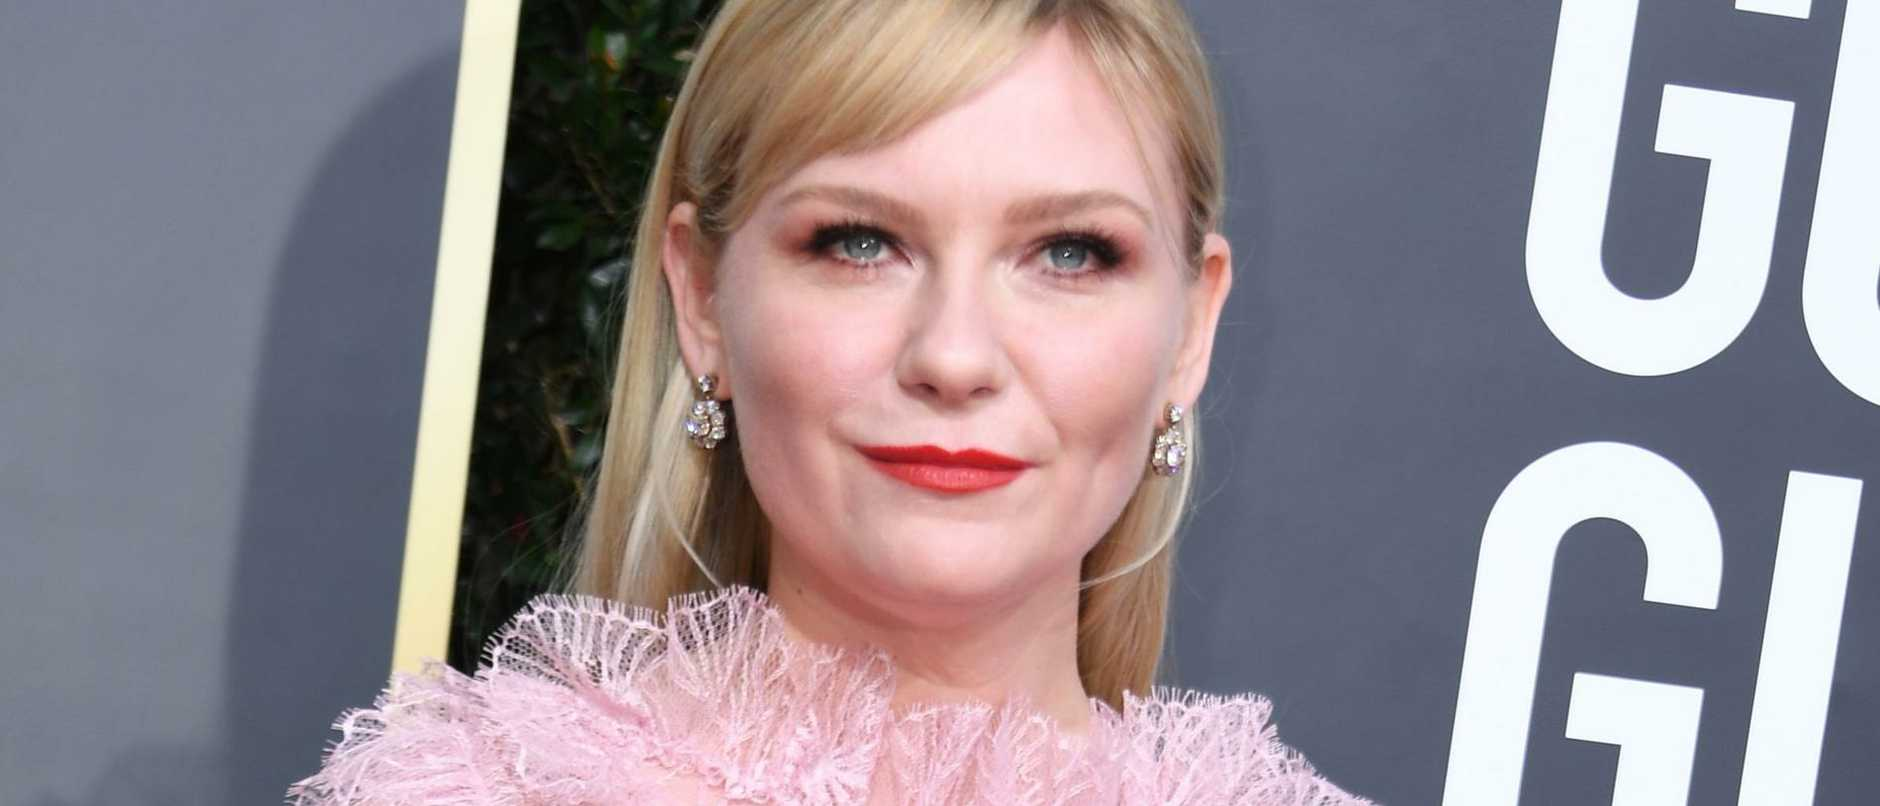 In the latest twist to Kanye's presidency bid, Kirsten Dunst has distanced herself from a campaign promo which used her image without consent.